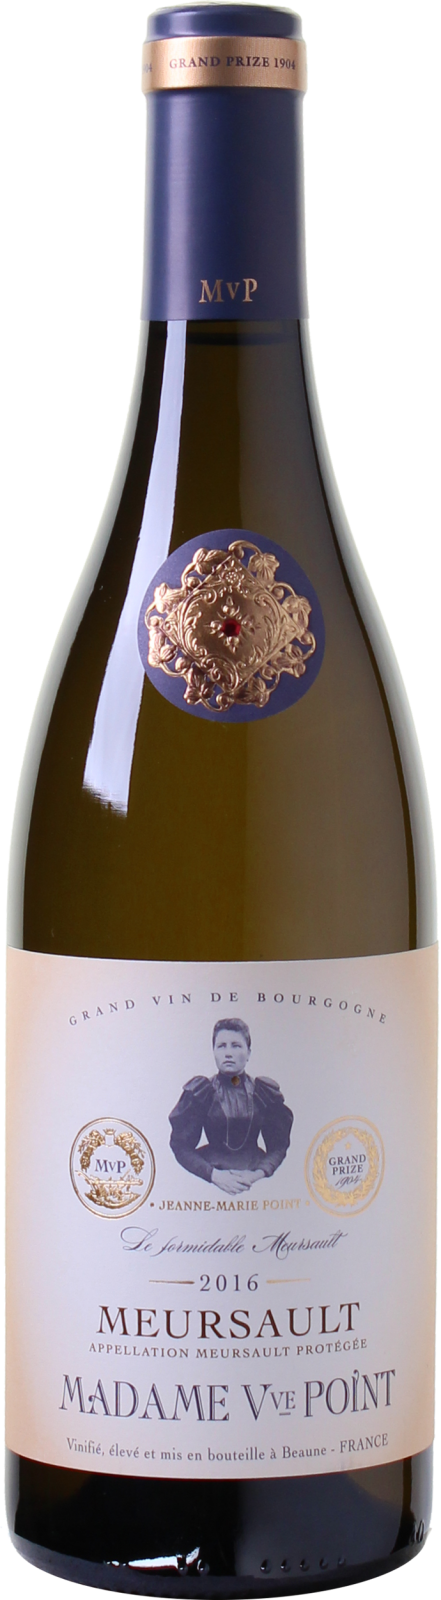 Madame Veuve Point Meursault